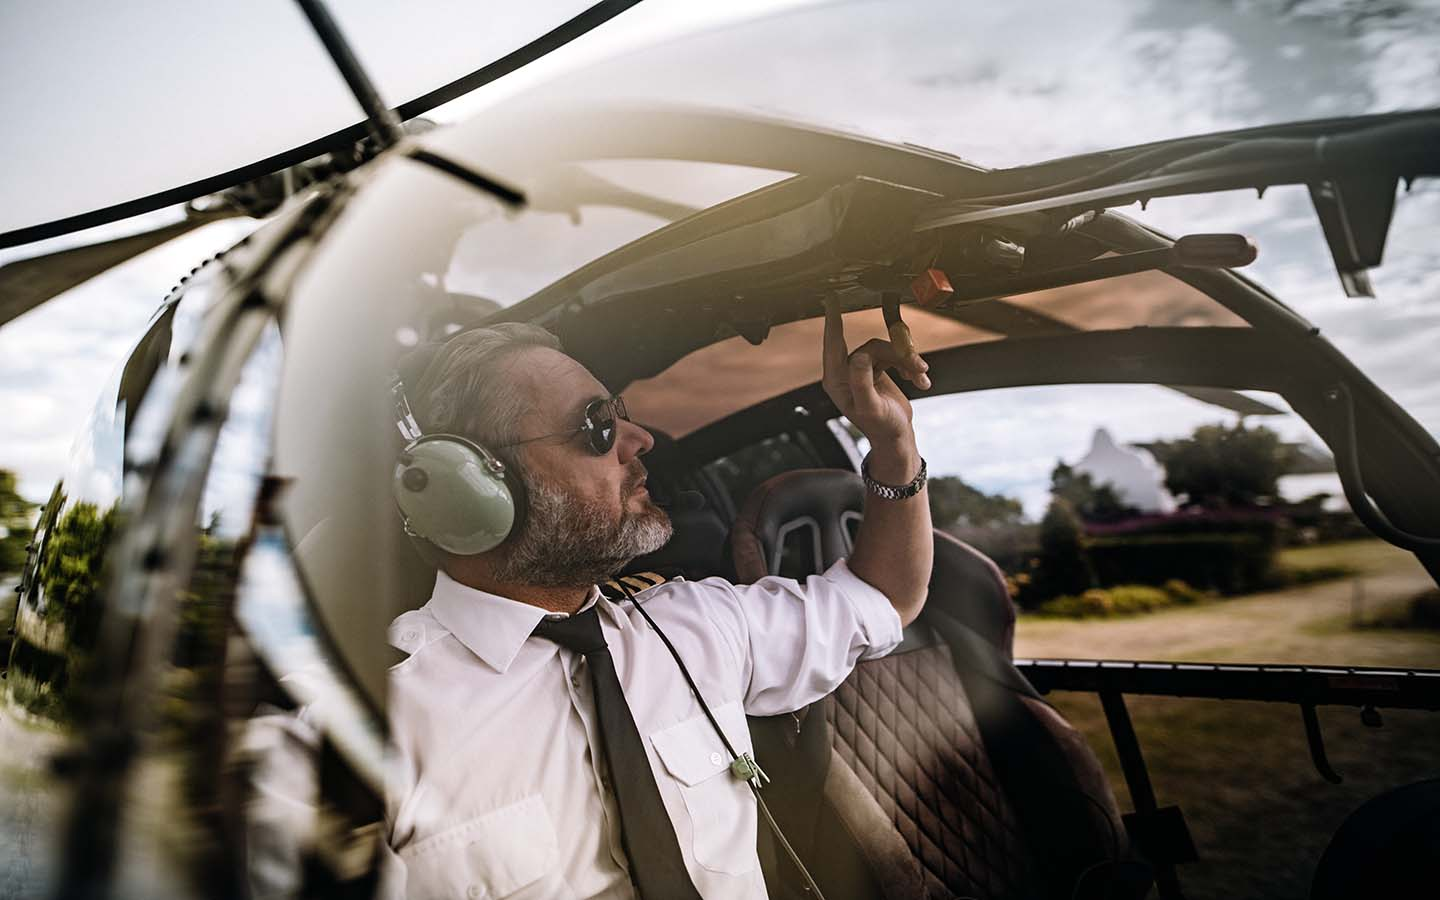 A pilot readies a helicopter for Atlantis Helicopter tours